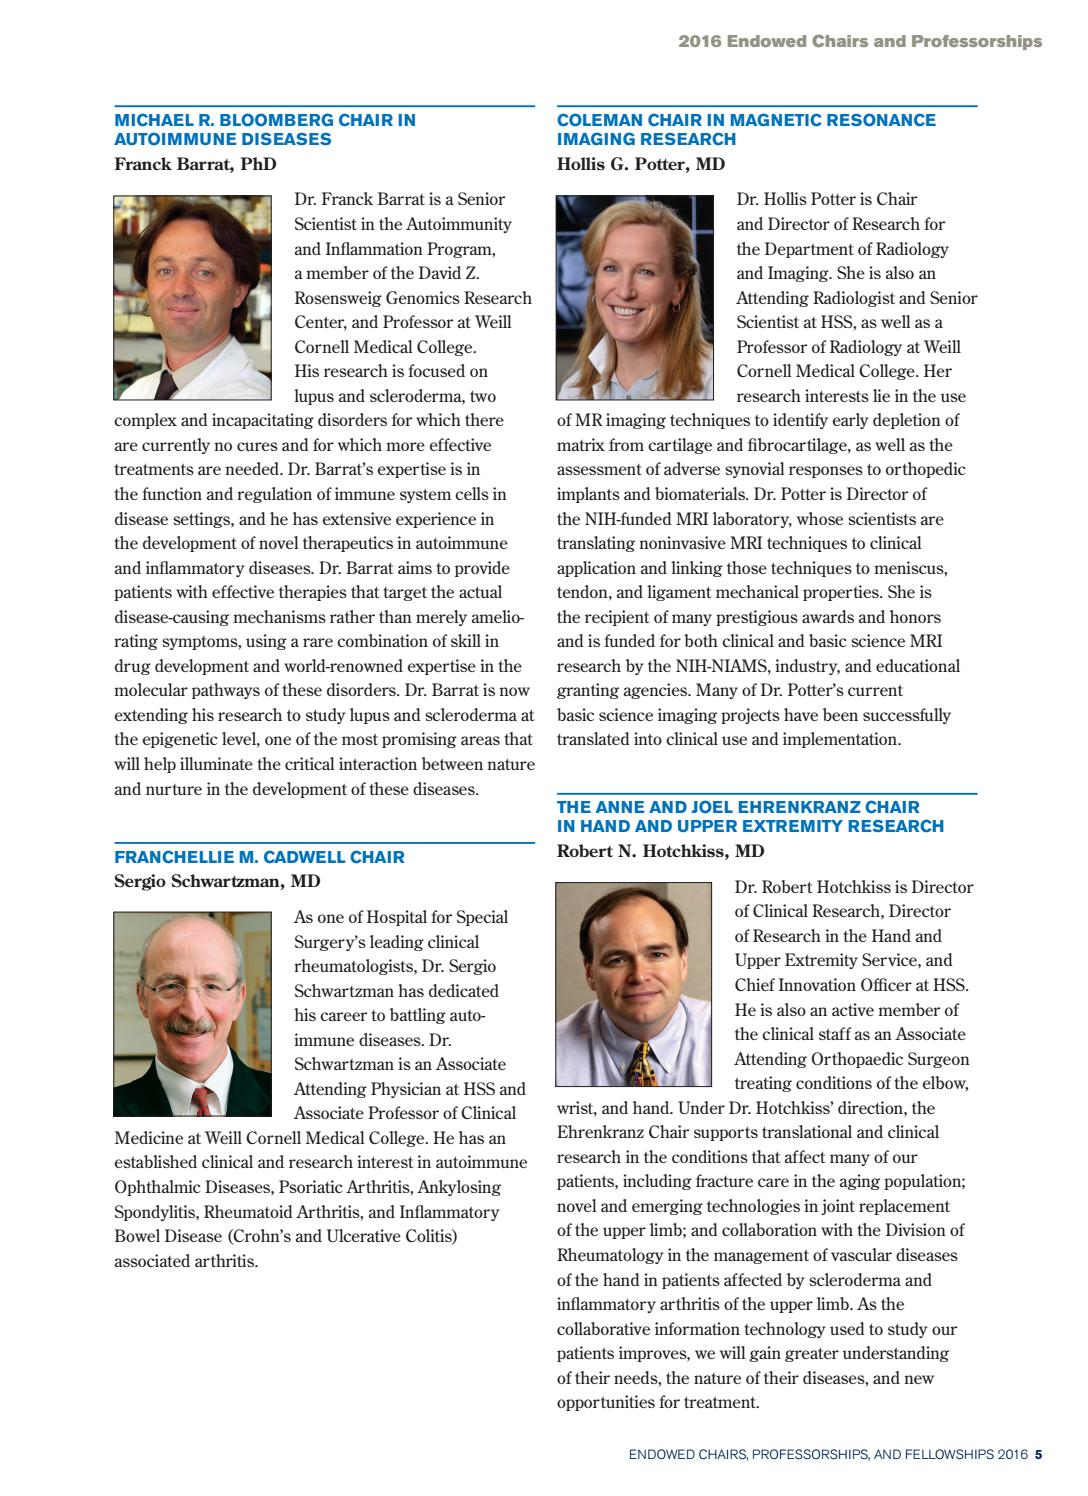 HSS Endowed Chairs, Professorships, and Fellowships 2016 by